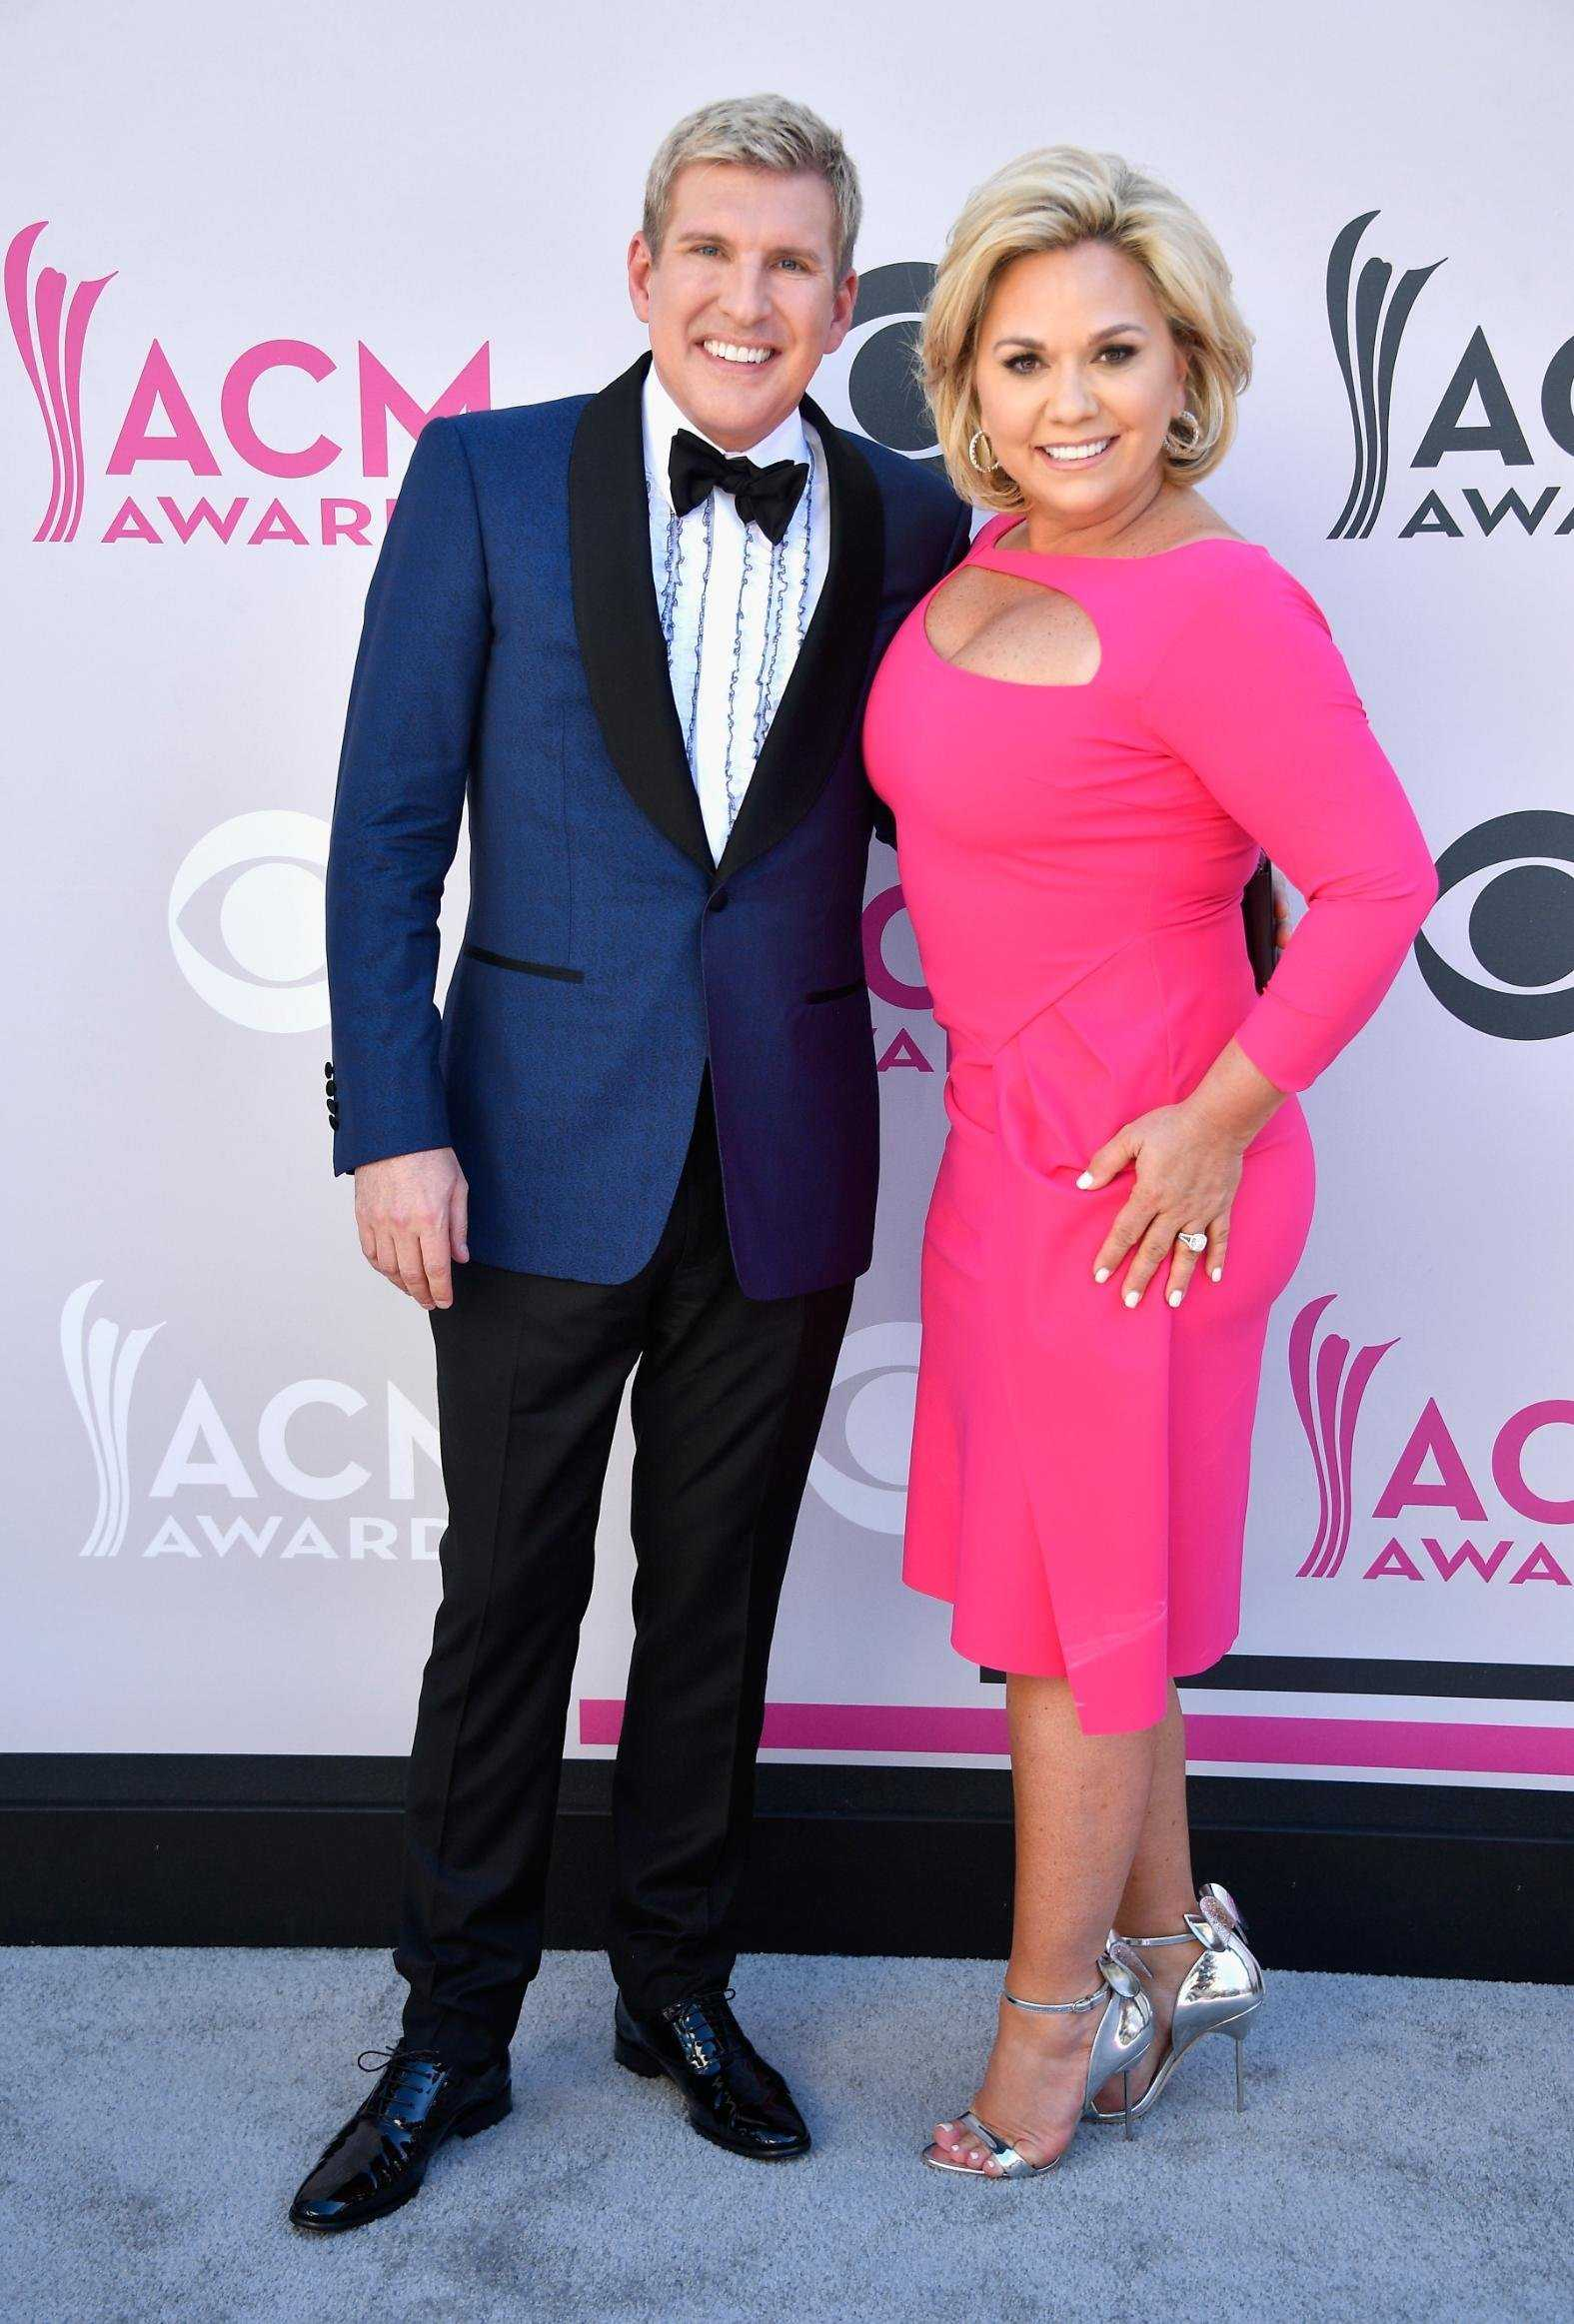 Truth TV stars Todd and Julie Chrisley indicted on tax evasion prices thumbnail